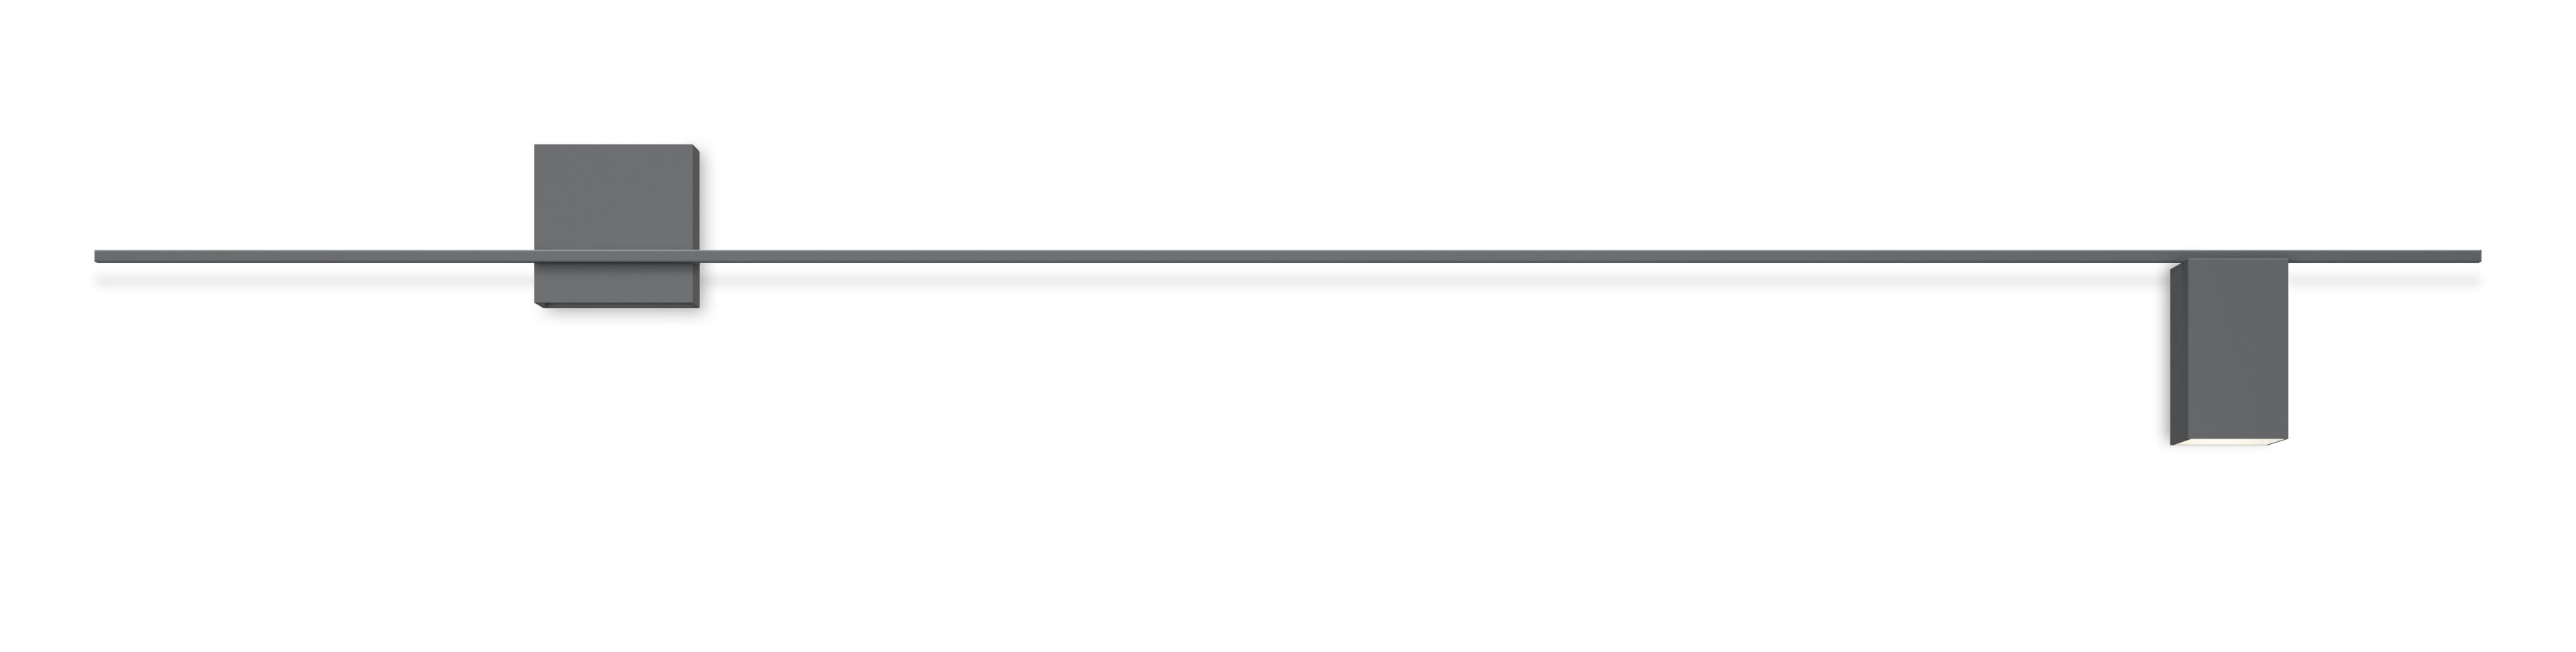 Lighting - Wall Lights - Structural LED Wall light - / L 240 cm by Vibia - Grey - Lacquered aluminium